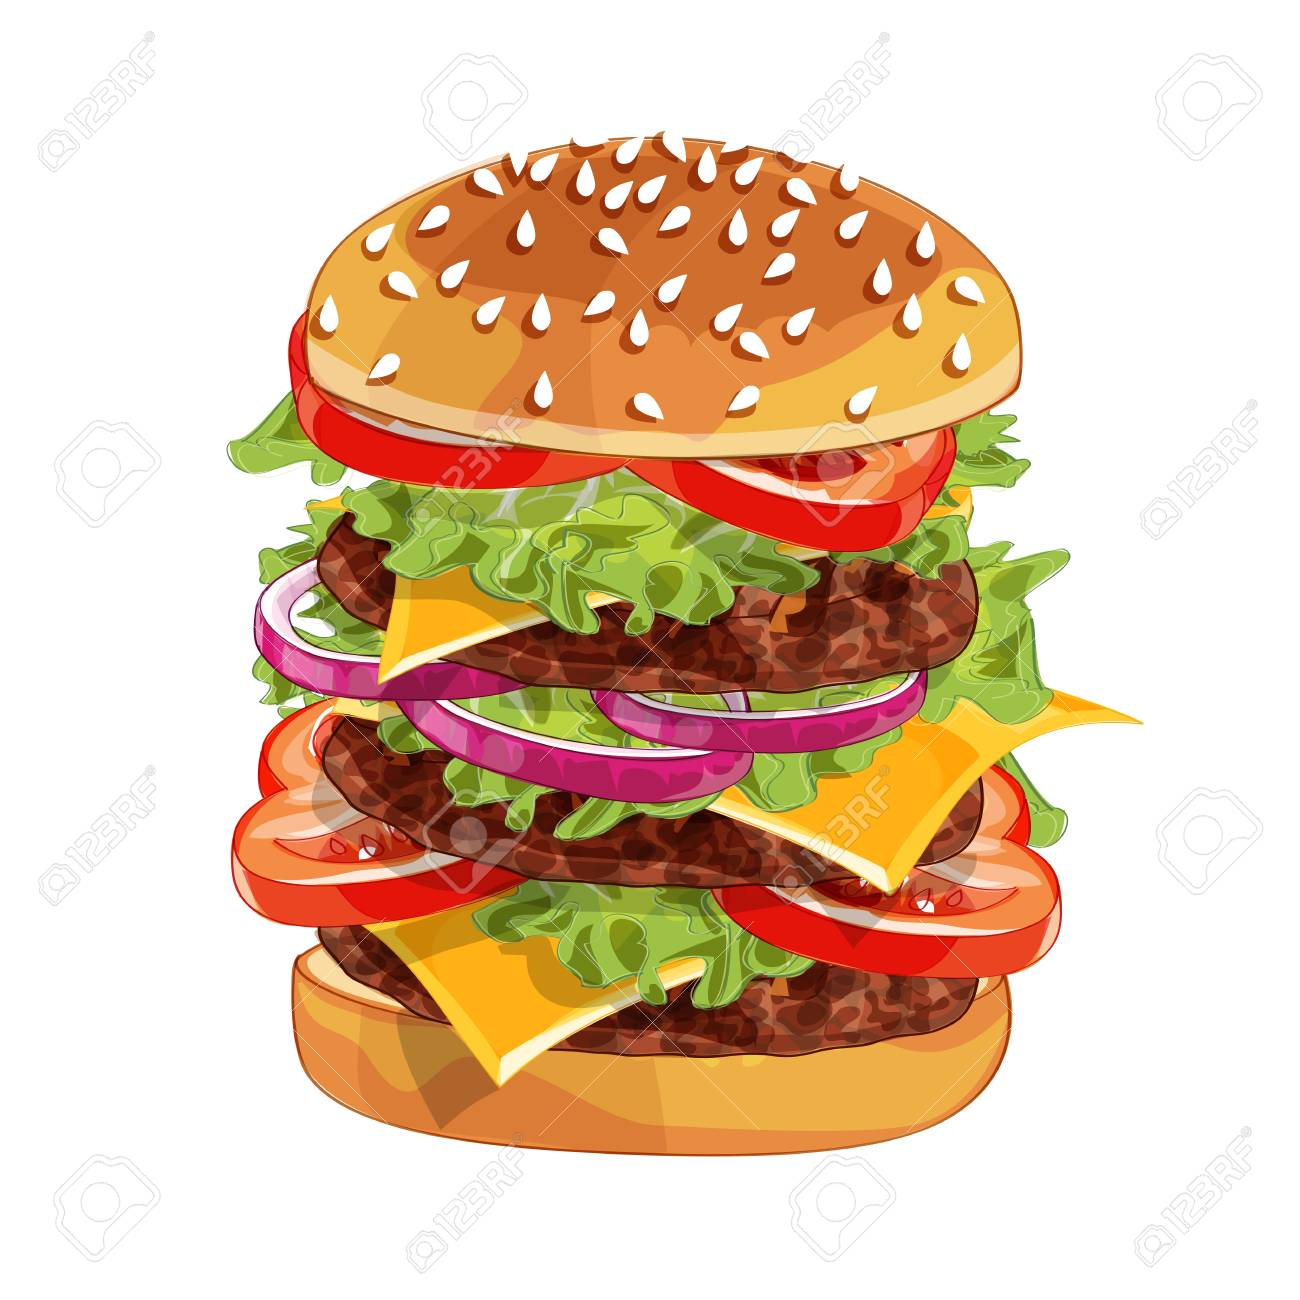 Vector realistic illustration pattern of burger, delicious hamburger with ingredients lettuce, onion, patty, tomato, cheese, bun isolated on white background - 123124843